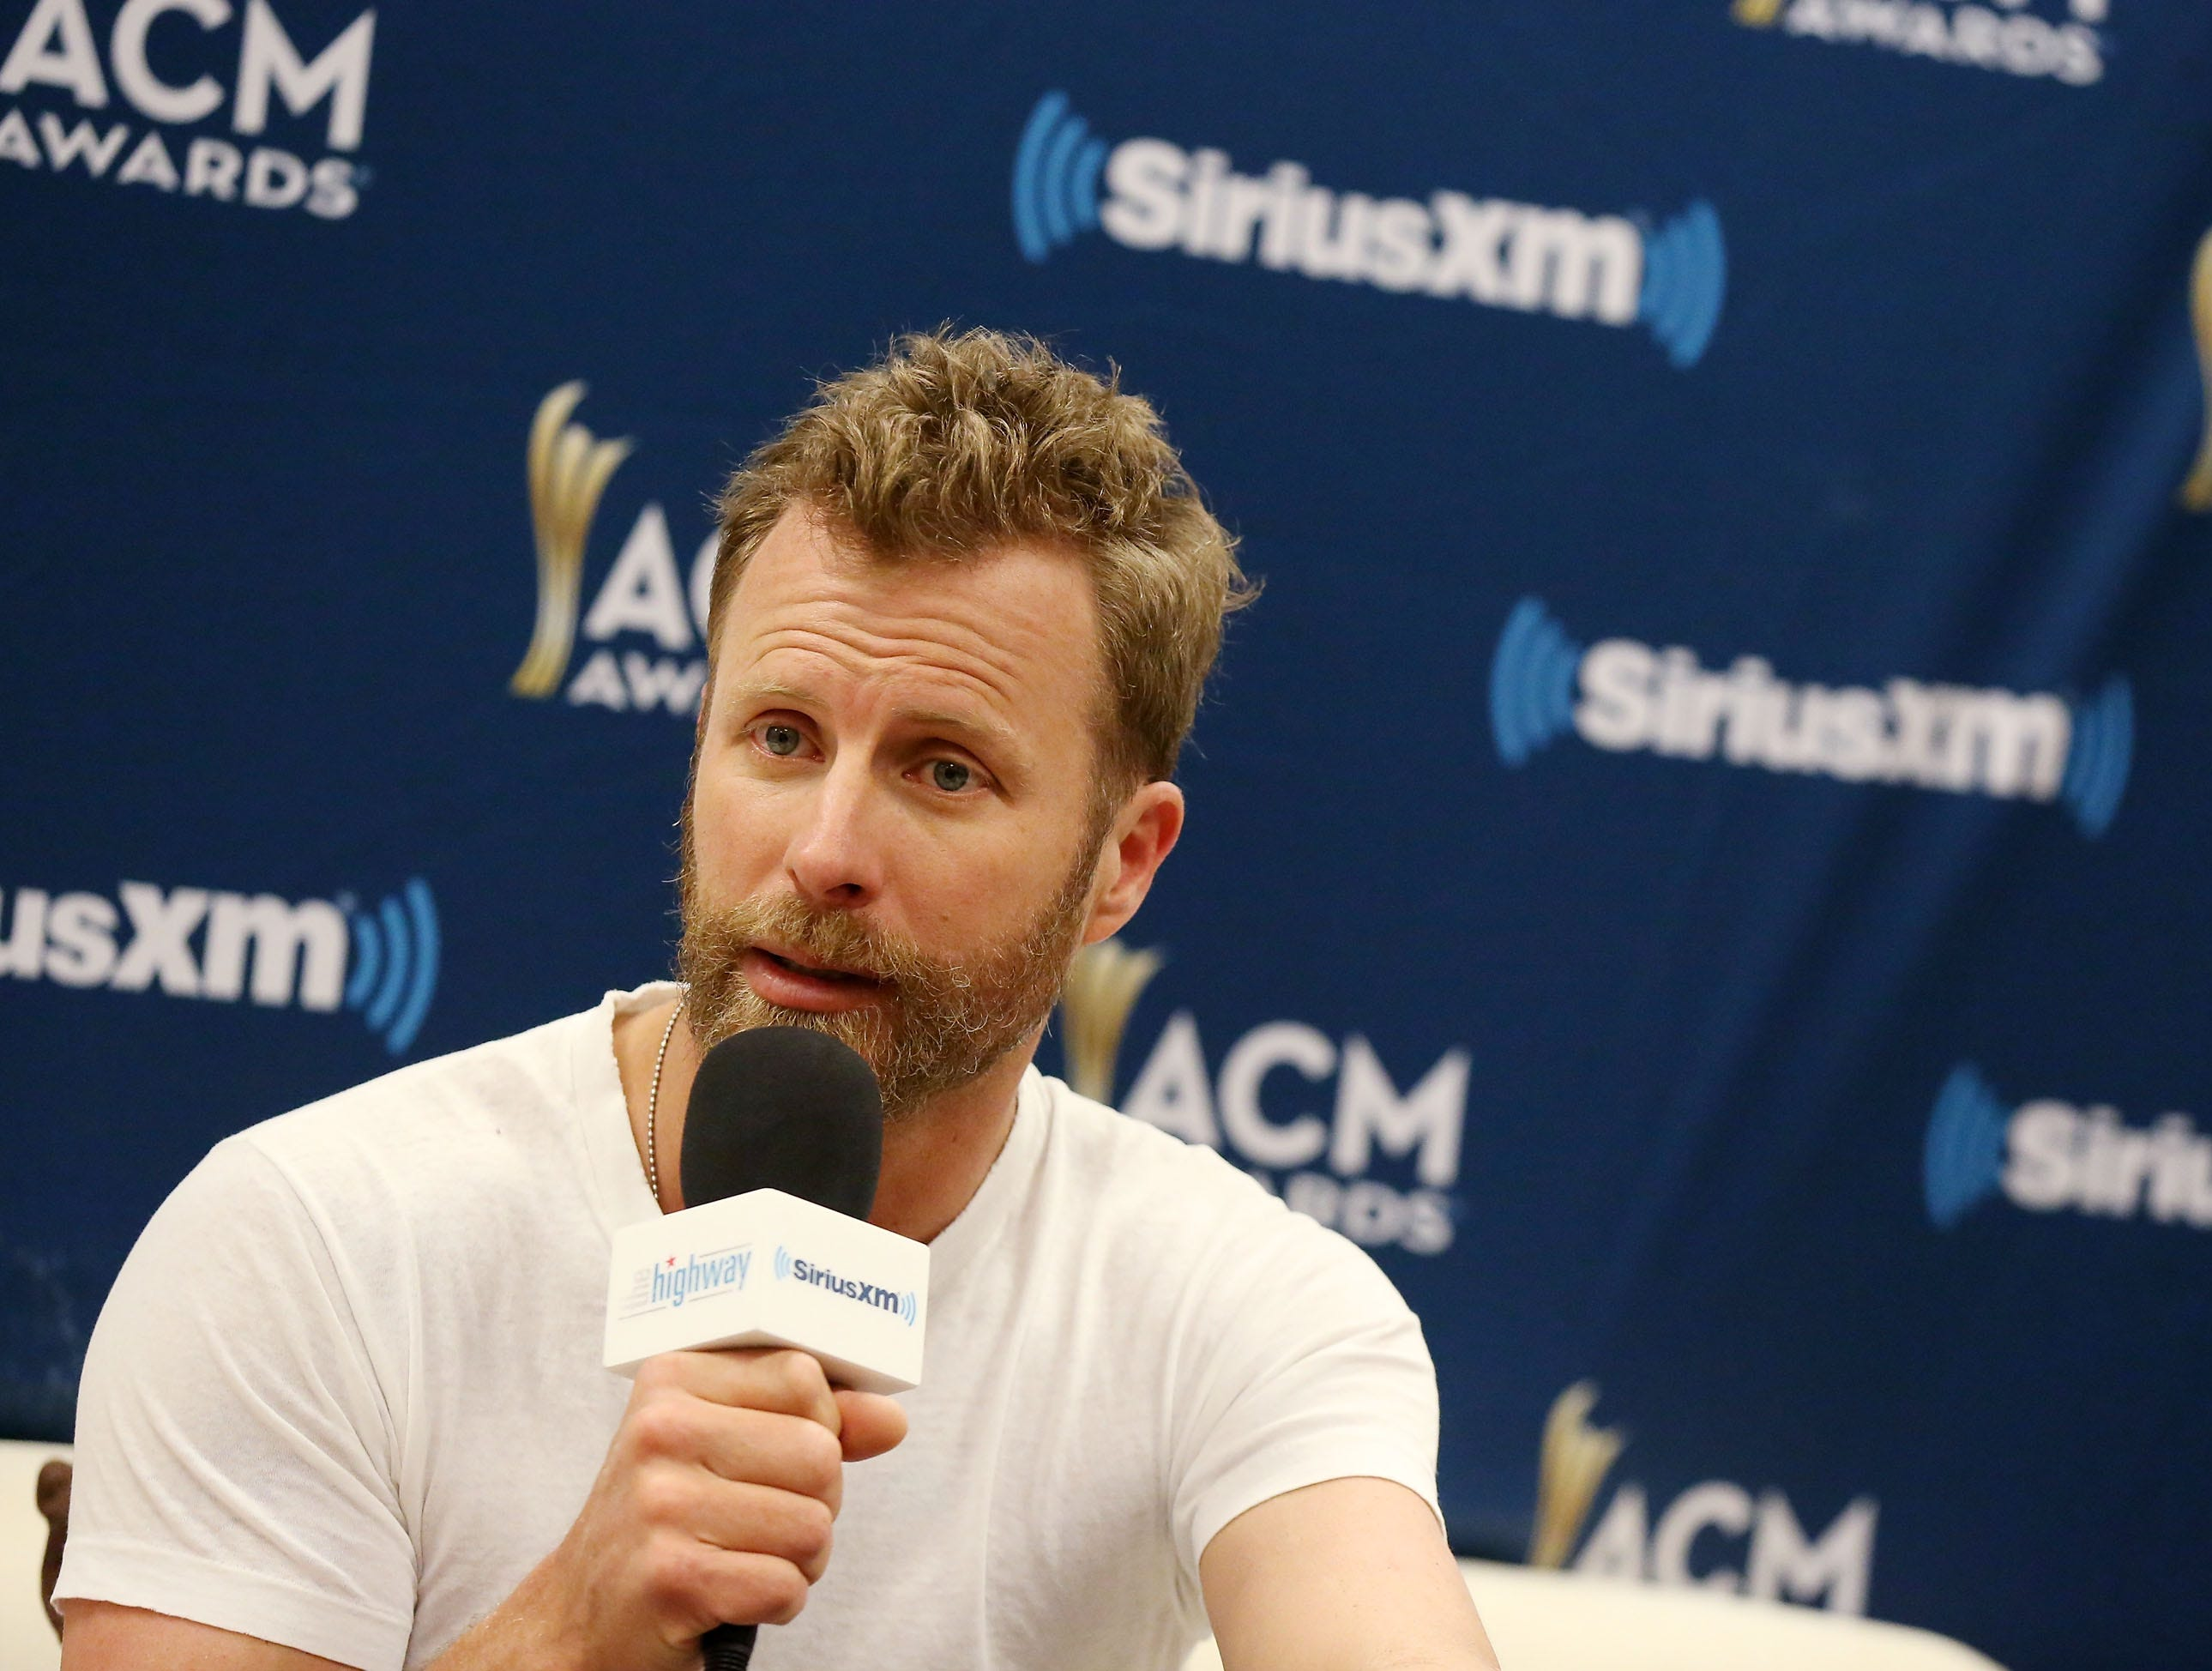 Dierks Bentley attends SiriusXM's The Highway channel broadcast at the Academy of Country Music Awards on April 14, 2018, in Las Vegas.